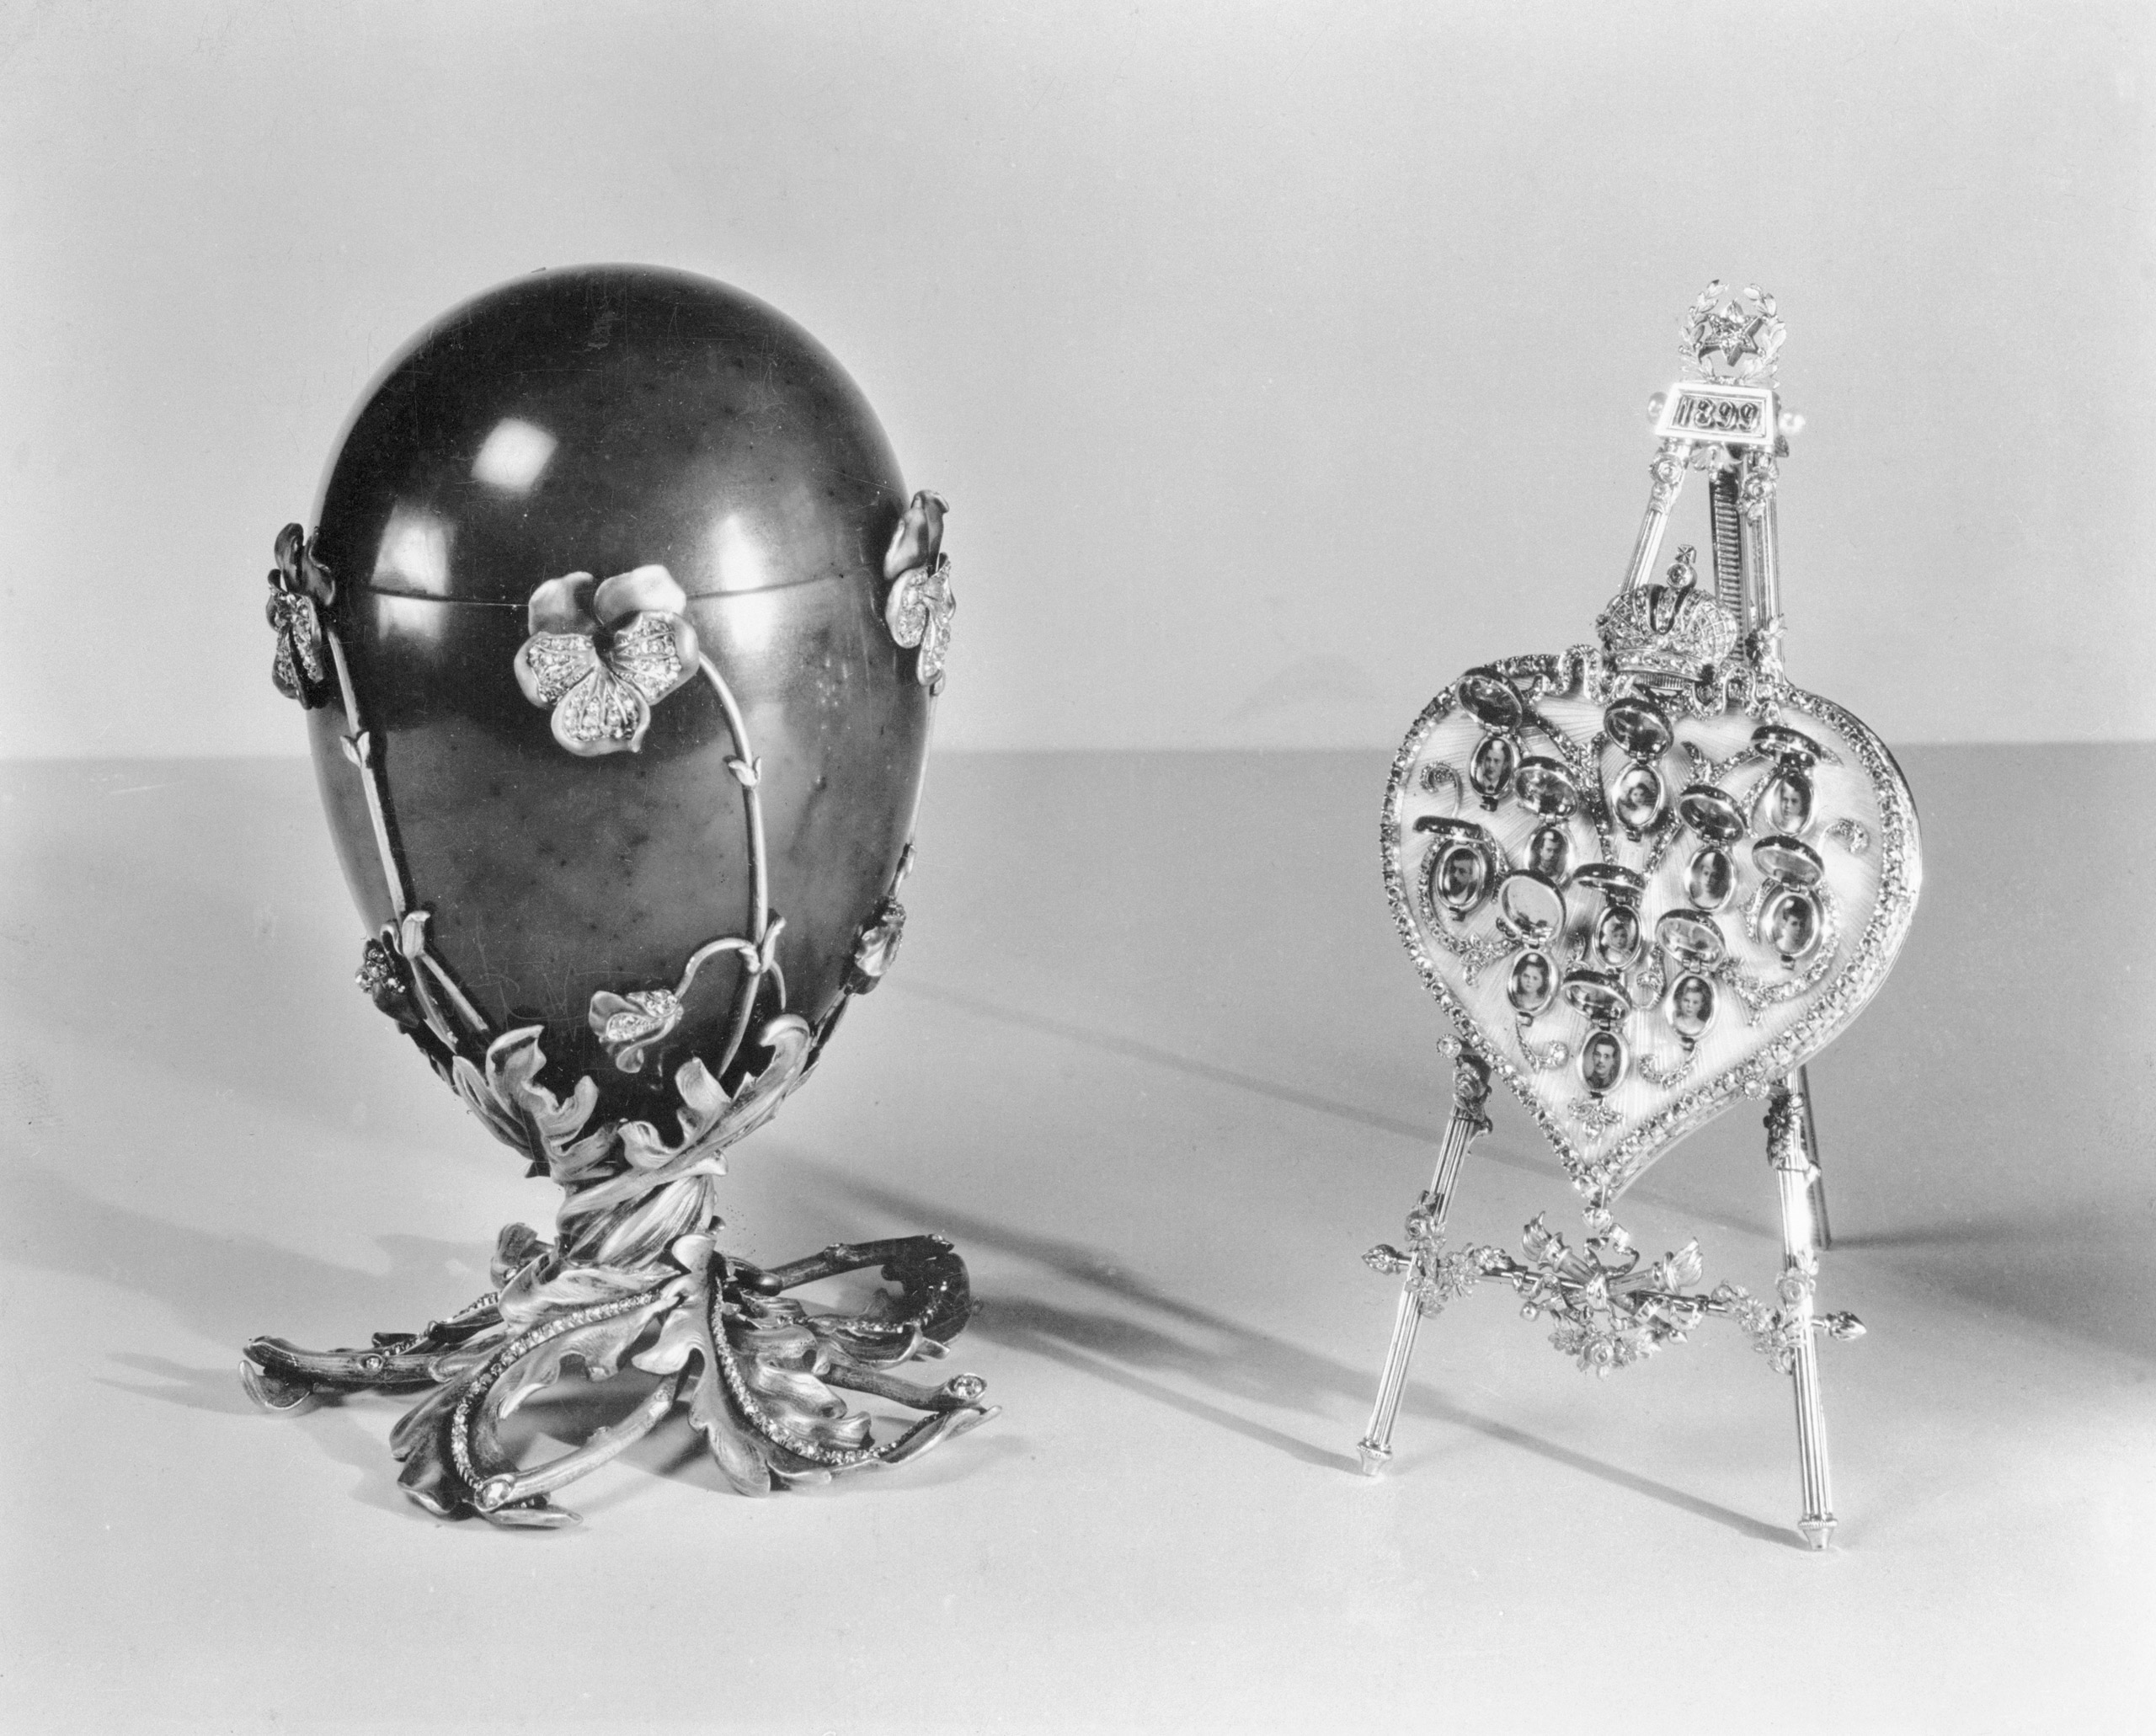 Russian Imperial Gems shown In New York City at the Hammer Galleries in 1937. Spinach jade Fabergé Easter egg, decorated with pansies of enamel and diamonds, mounted on a pedestal of twisted gold leaves and twigs, also studded with diamonds. It contains a folding easel in the shape of a diamond-studded heart, covered with translucent enamel. The heart is surmounted by the Imperial Crown in diamonds. It was presented by Czar Nicholas II to his mother, the Dowager Empress Marie, at Easter in 1899.